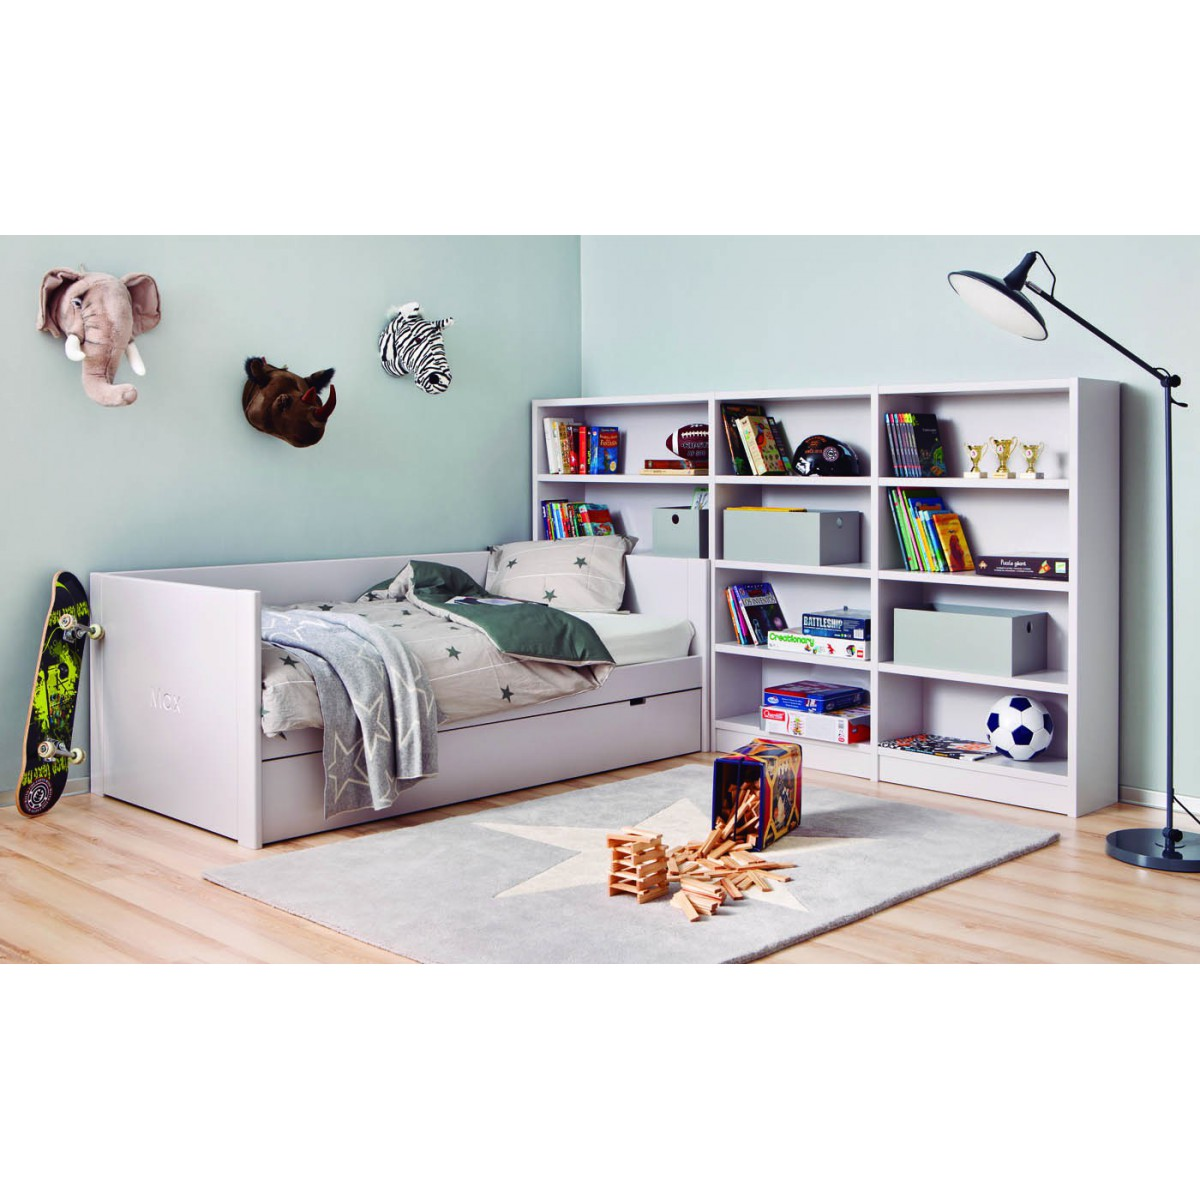 biblioth que pour chambre d 39 enfants juniors de qualit. Black Bedroom Furniture Sets. Home Design Ideas